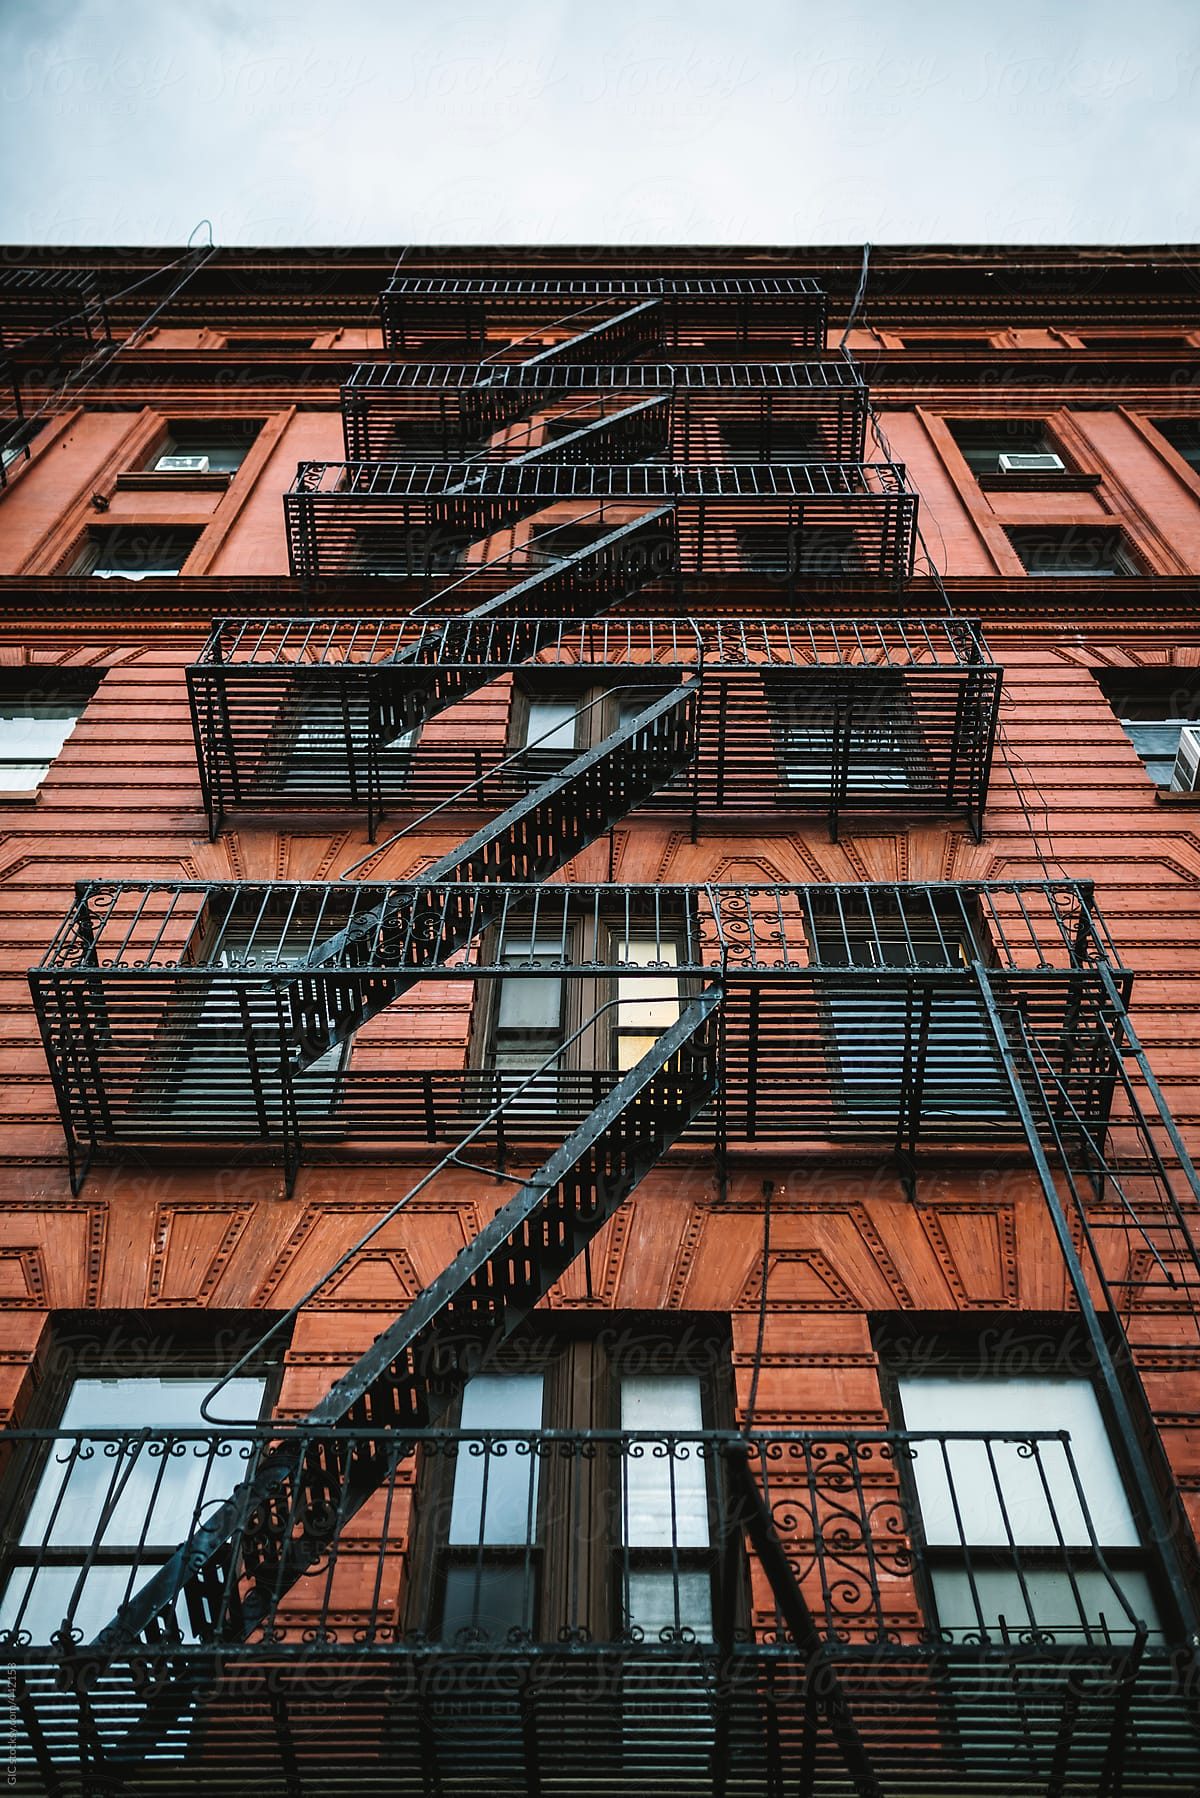 Outside Stairs On Building In Manhattan By GIC For Stocksy United